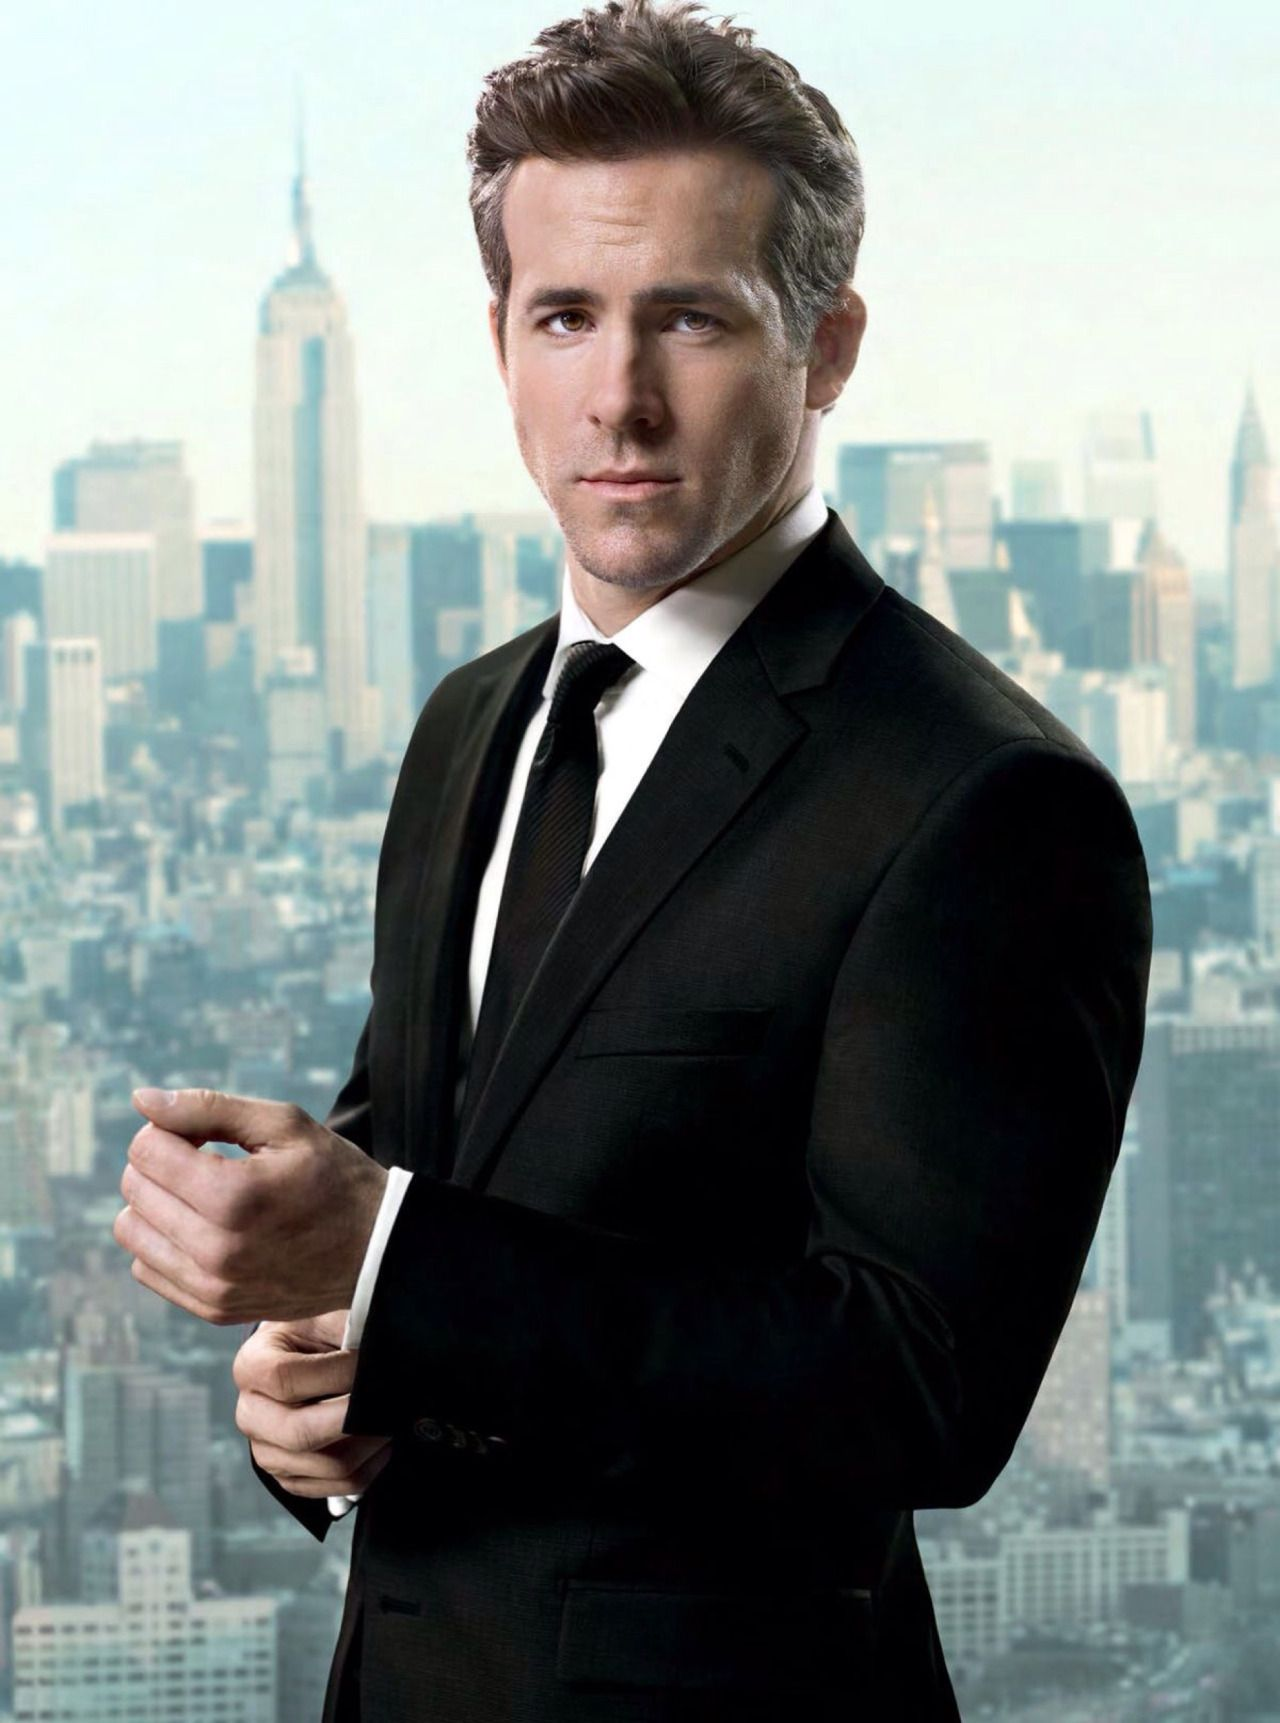 Ryan Reynolds Blake lively ryan reynolds, Ryan reynolds